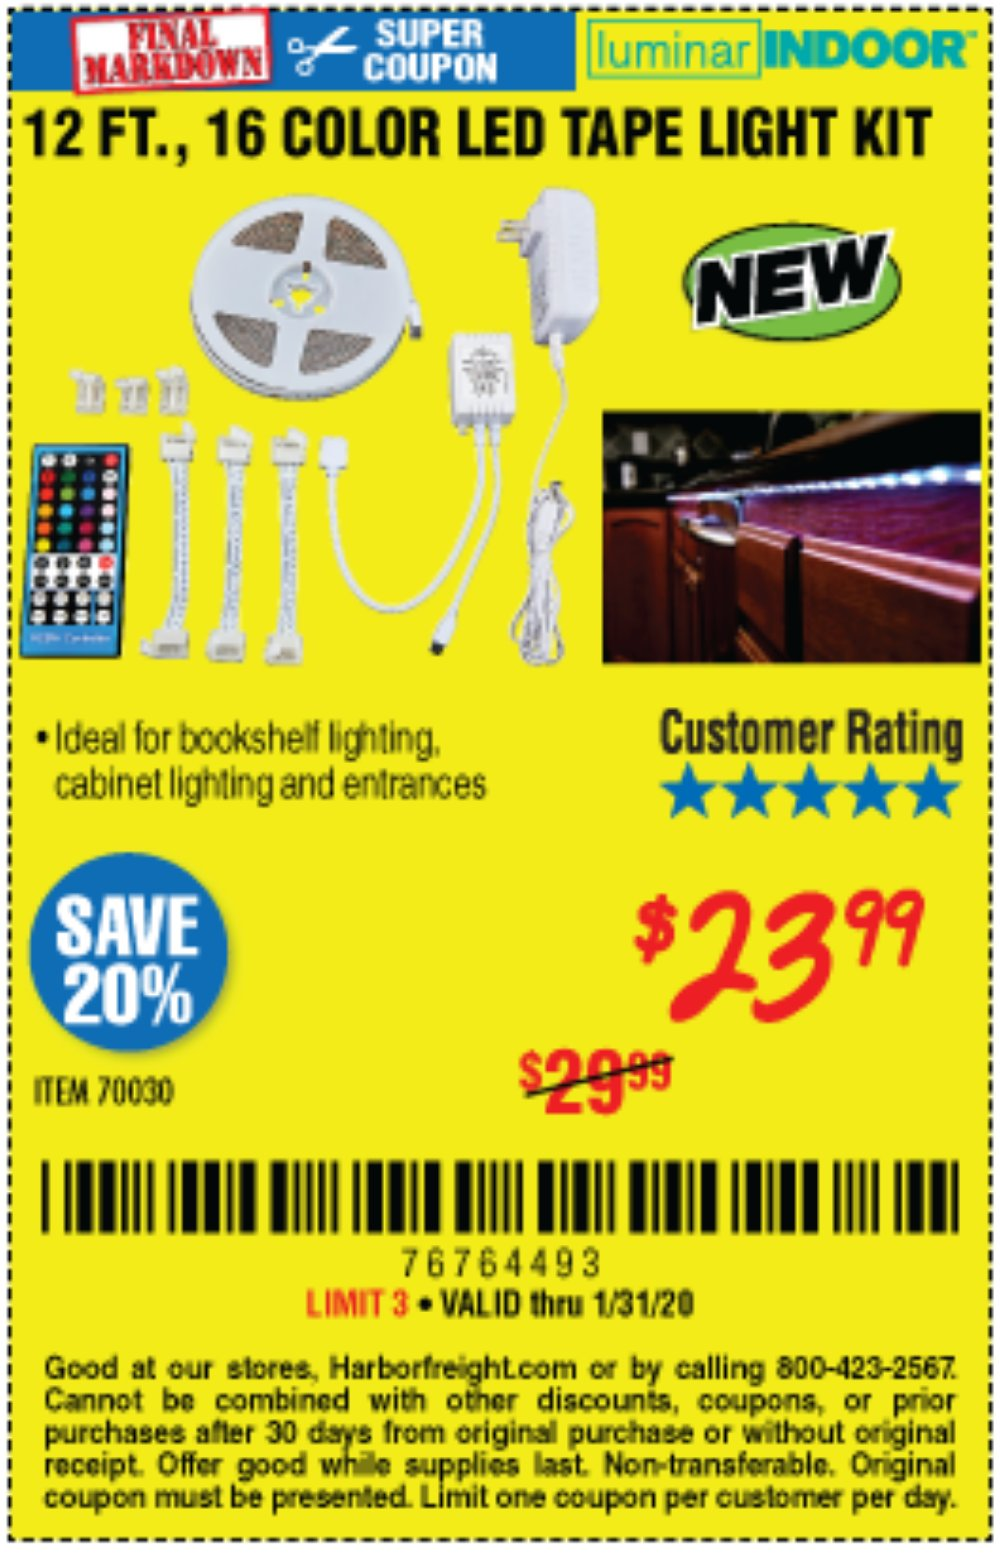 Harbor Freight Coupon, HF Coupons - 12 Ft., 16 Color Led Tape Light